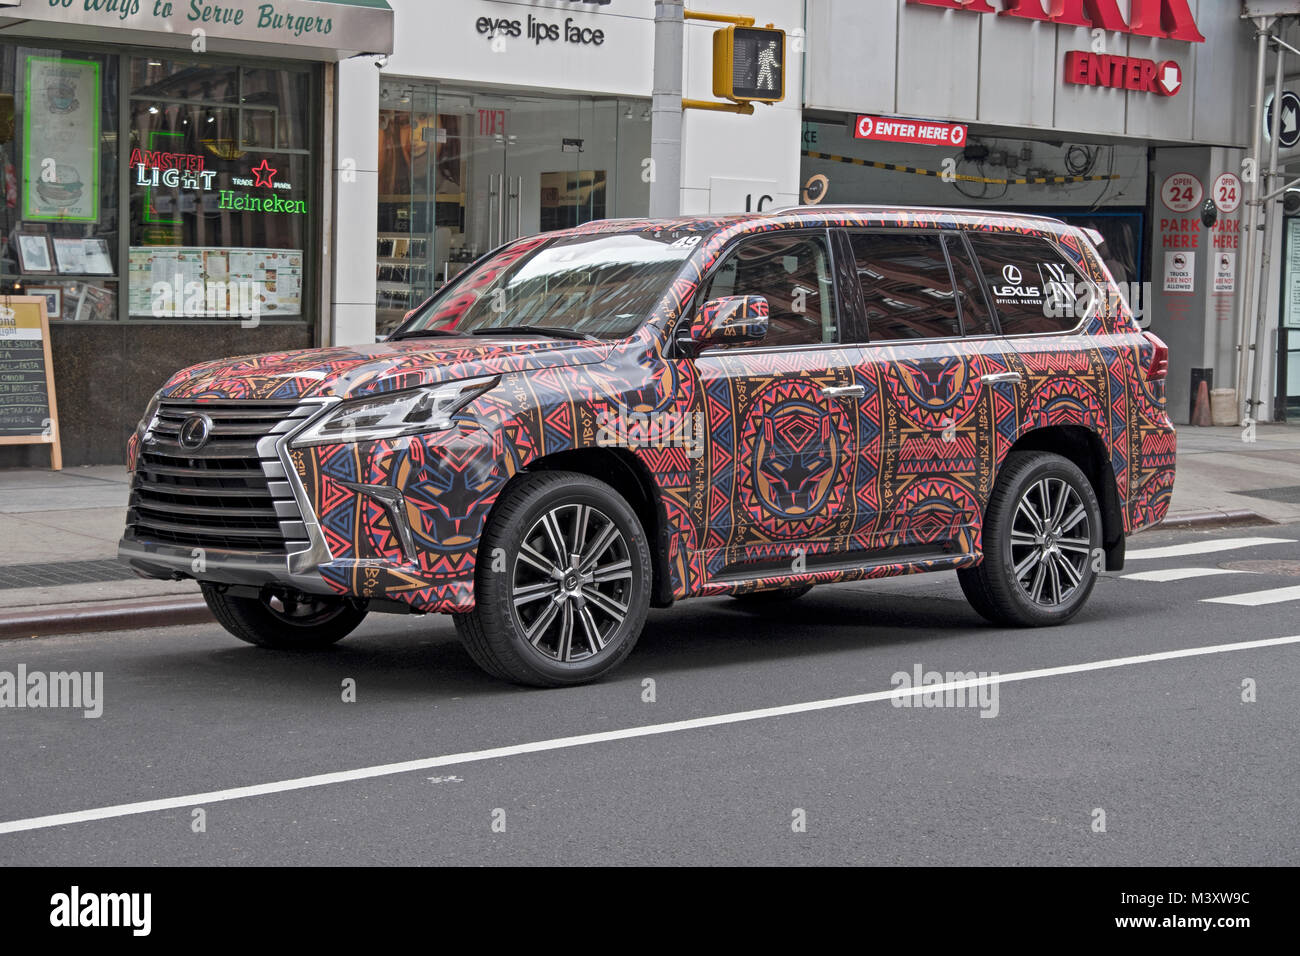 A colorful SUV promoting Lexus, New York Fashion Week and the film Black Panther. On Broadway in Greenwich Village, - Stock Image